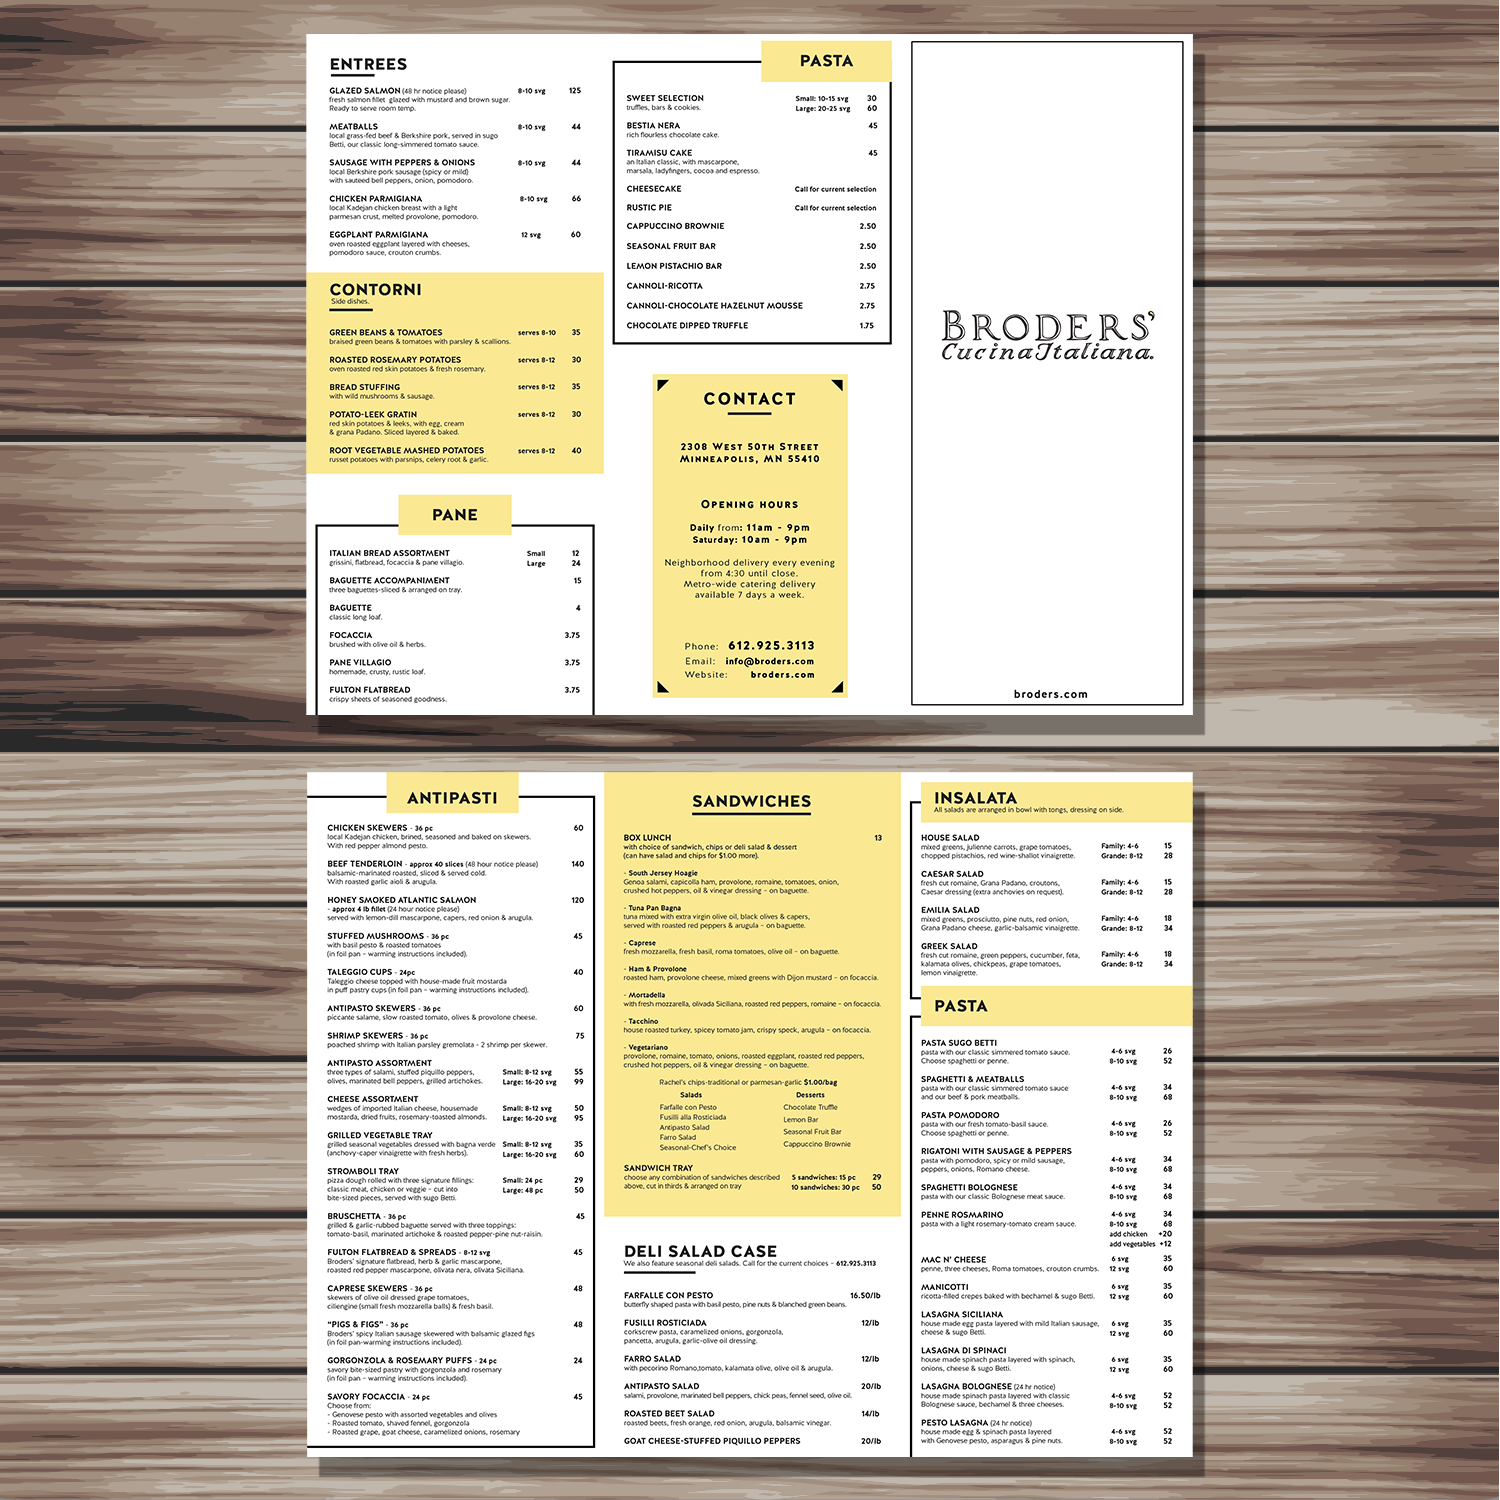 Catering menu design for broders 39 cucina italiana by yns for Cucina italiana design